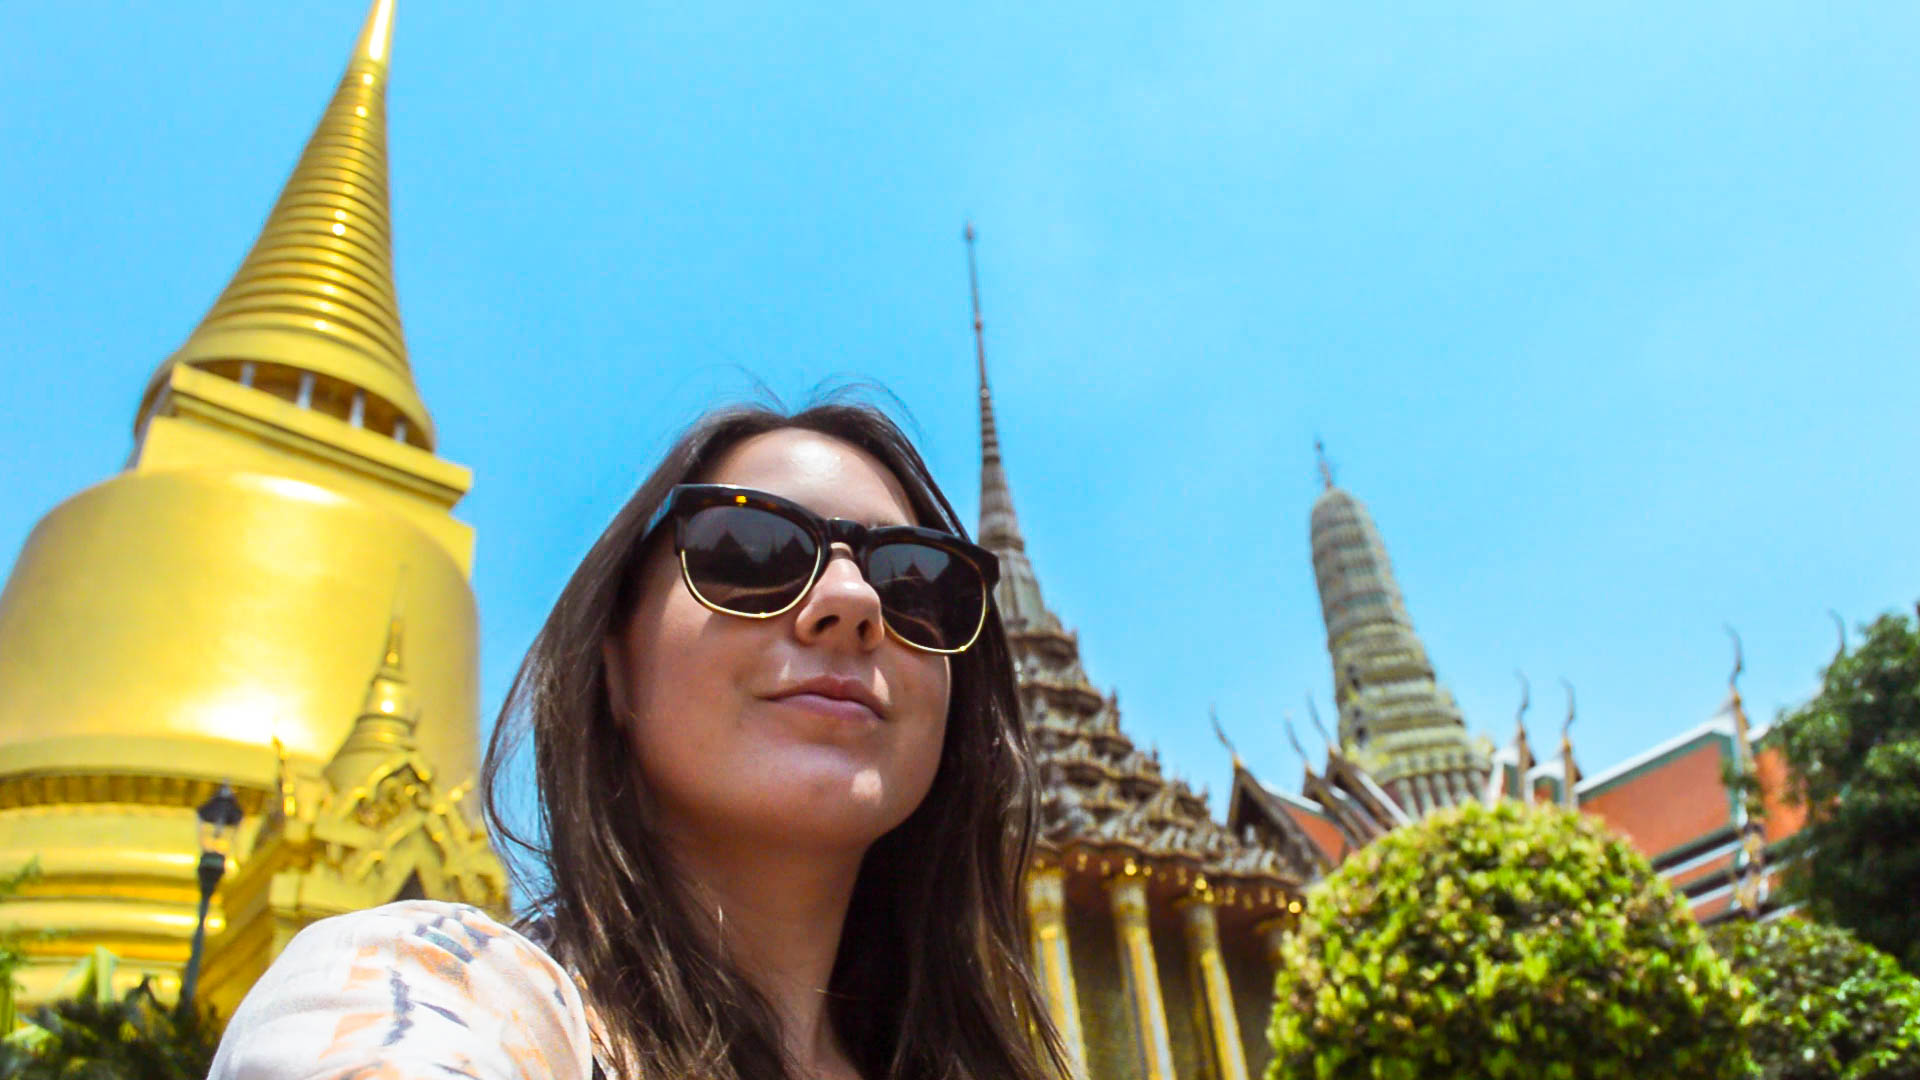 Bangkok, Thailand Travel | 2017 Travel Year in Review + Travel and Blog Goals for 2018 | goseekexplore.com